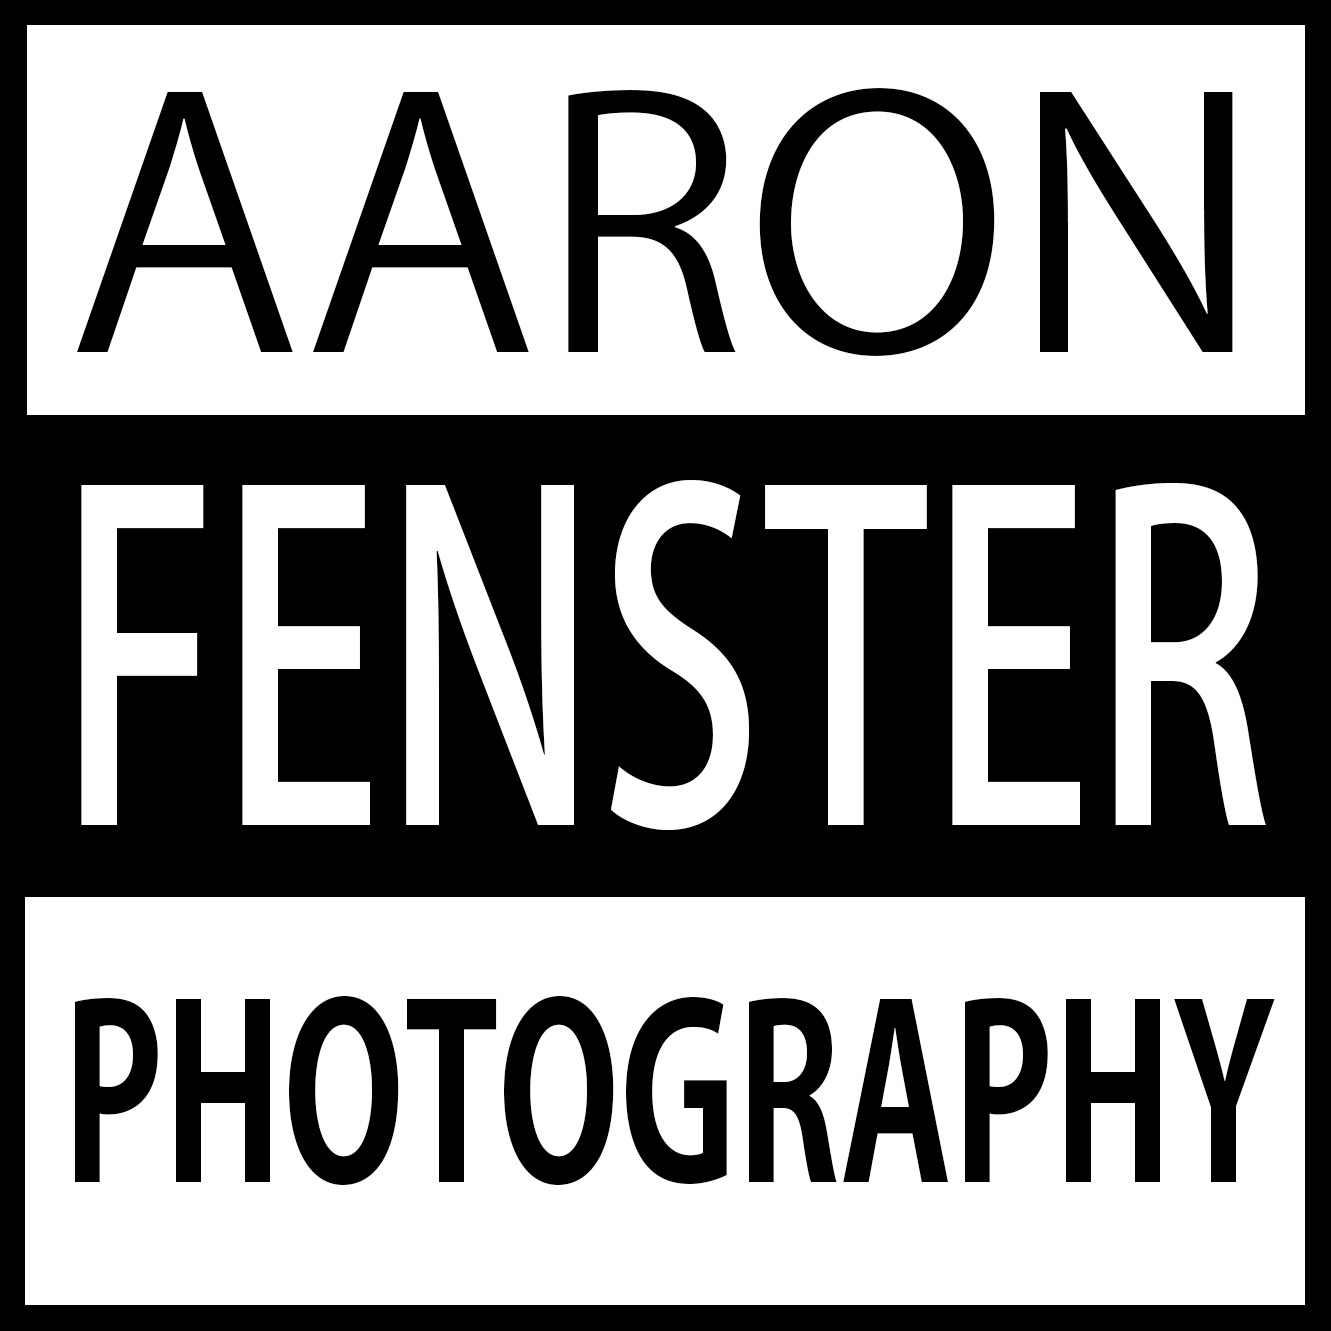 AARON FENSTER PHOTOGRAPHY